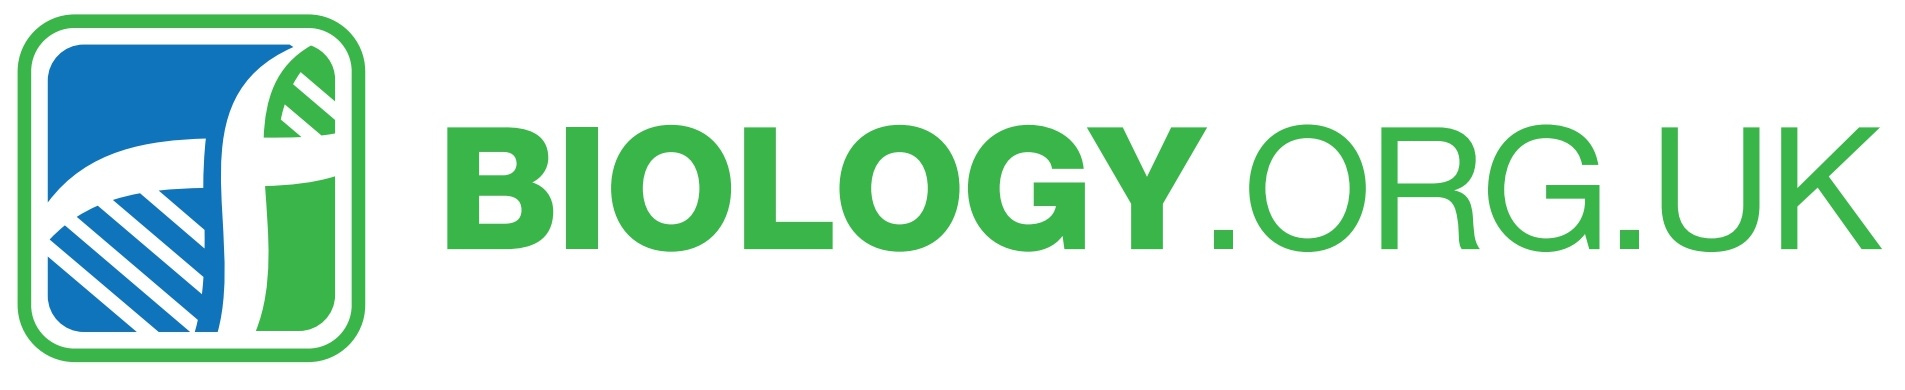 BIOLOGY.ORG.UK